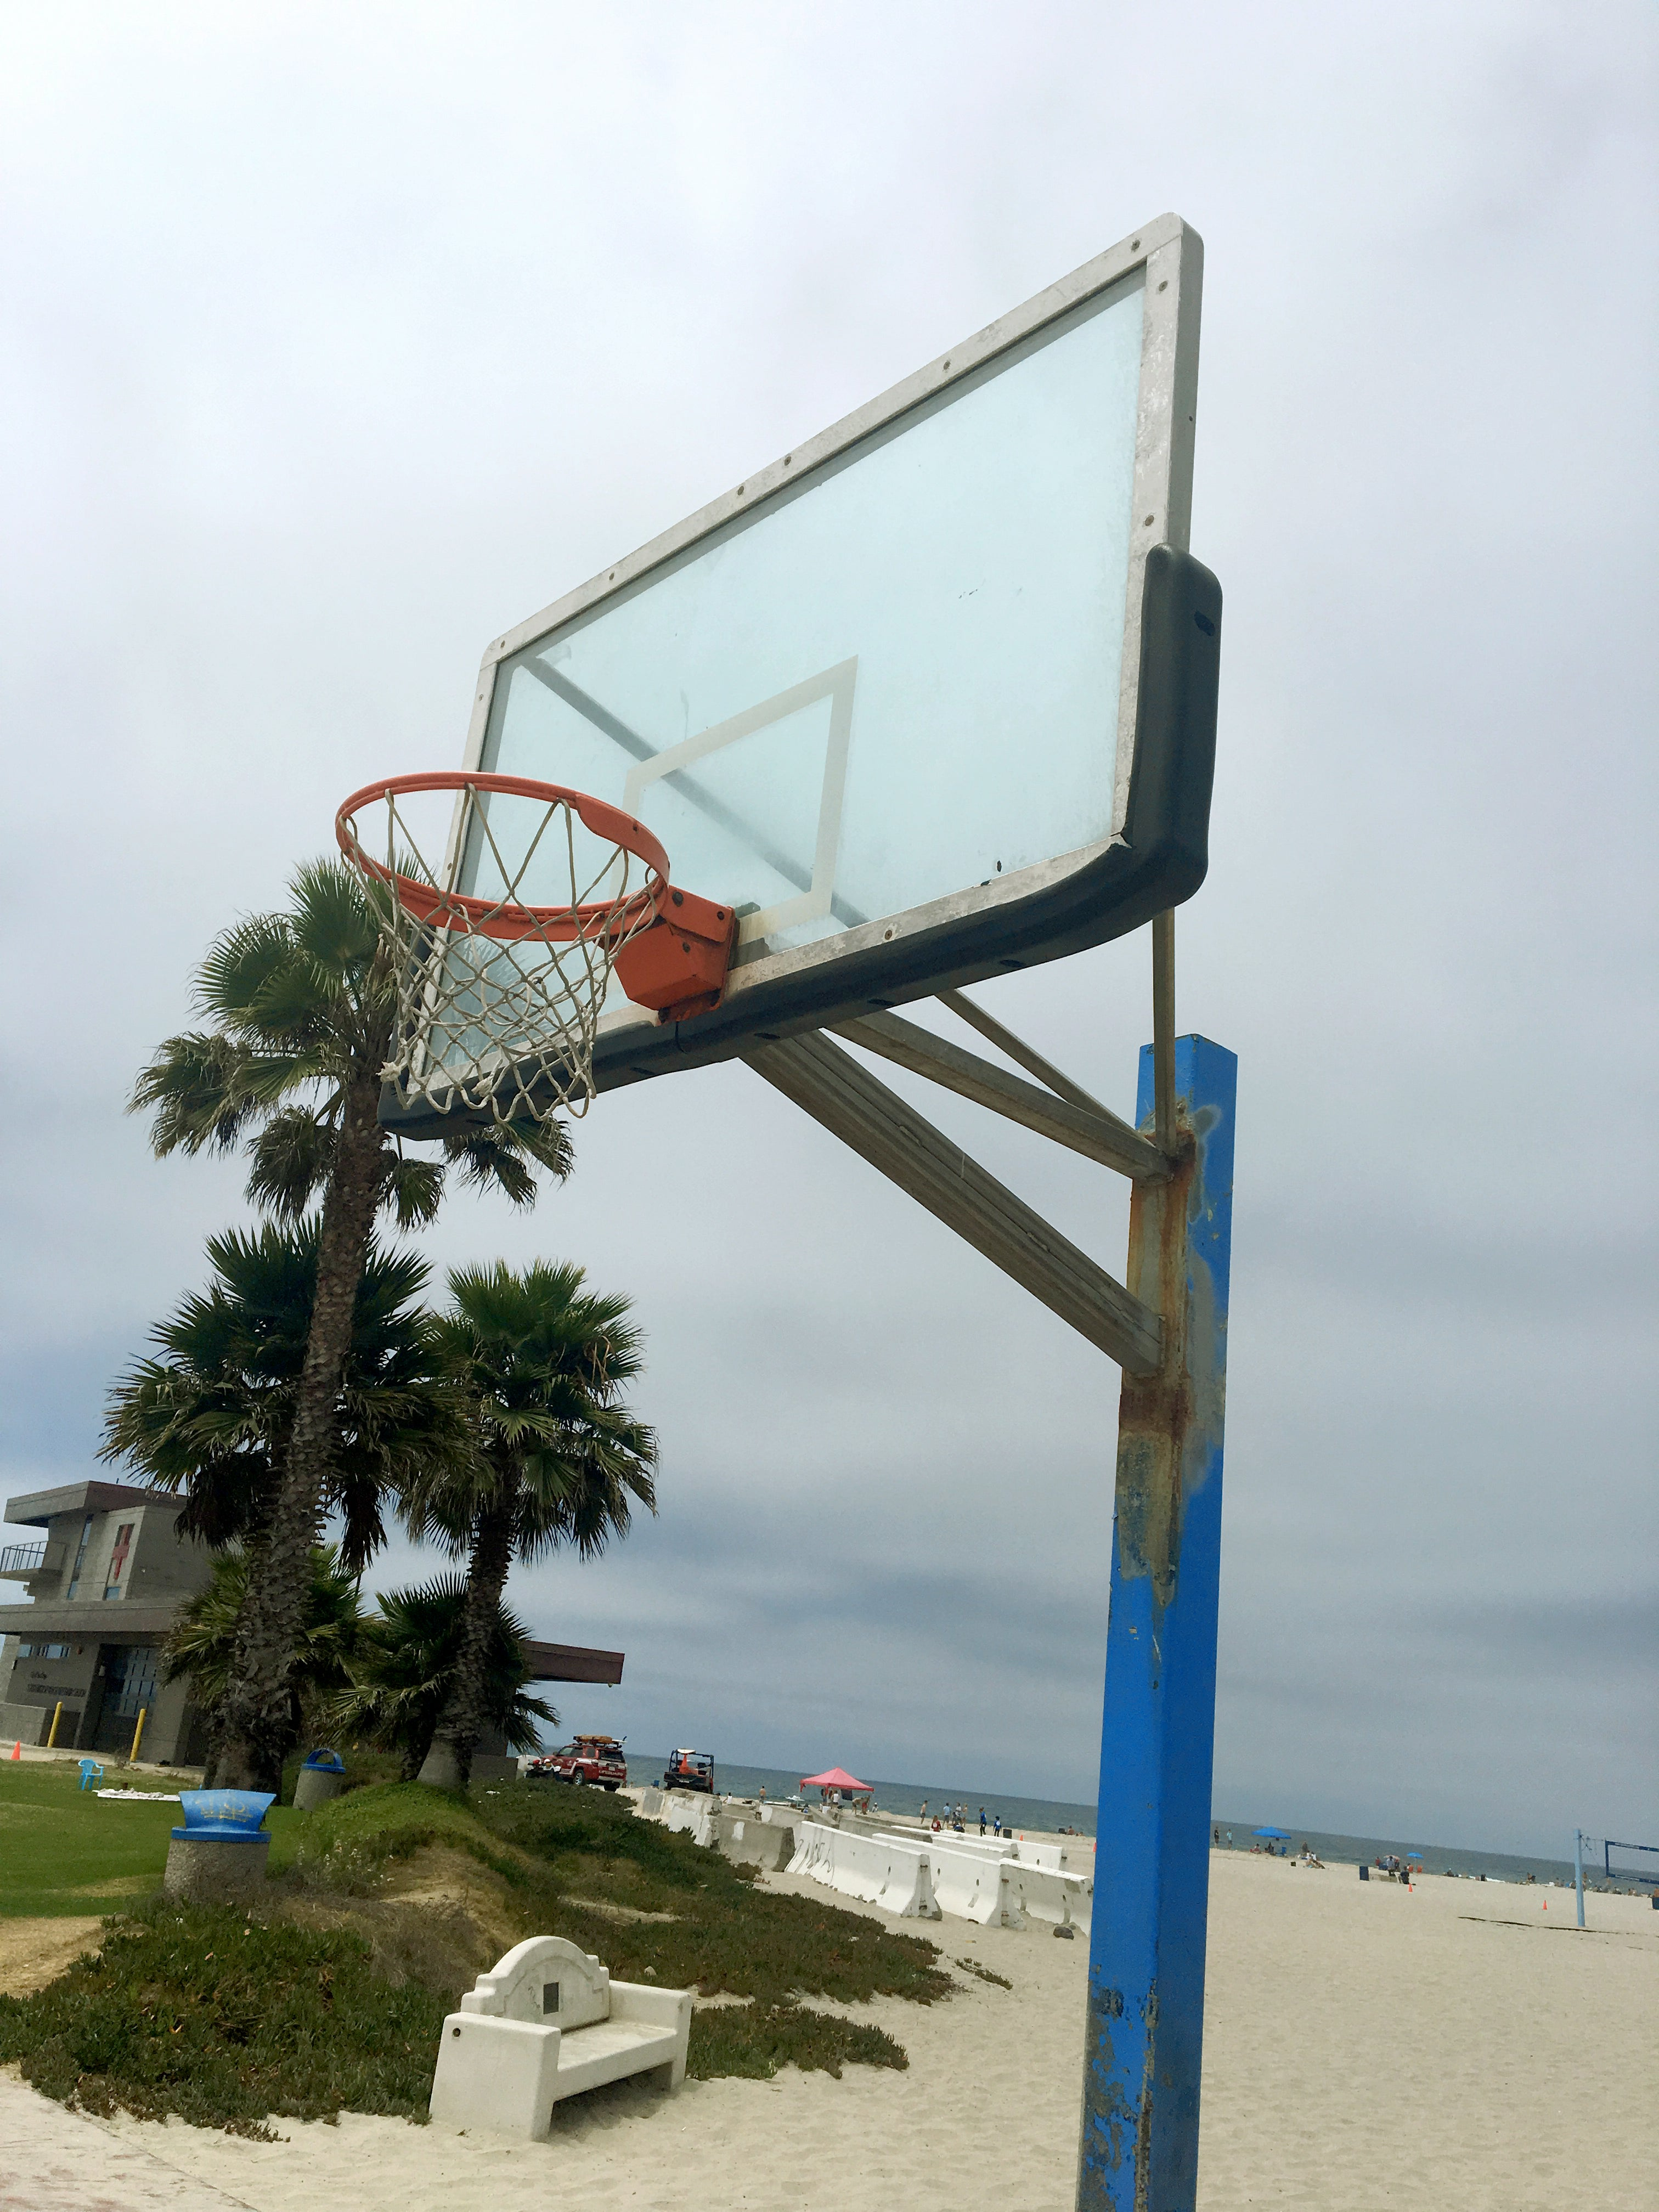 Basketball courts - hoop view looking up